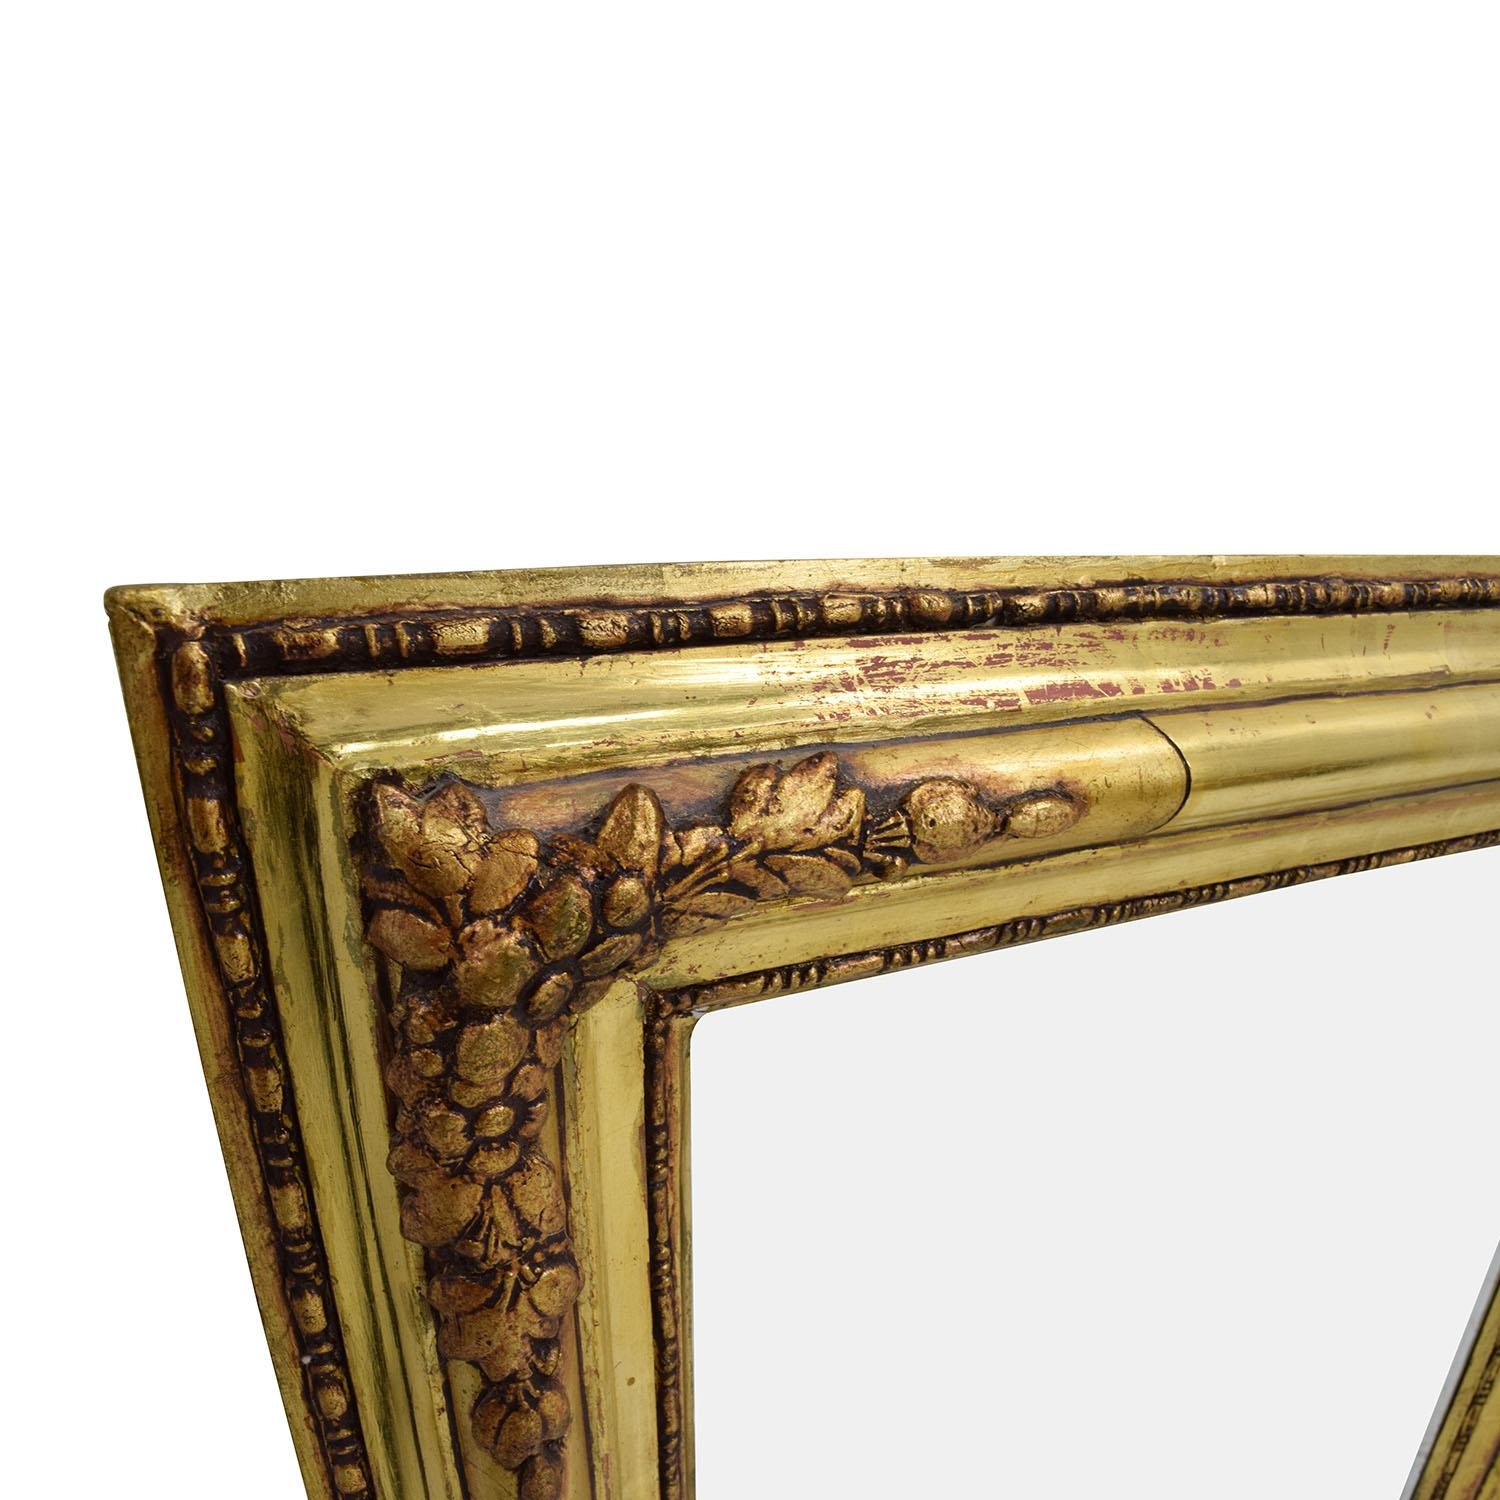 65% Off – Gilt Edged Gold Frame Mirror / Decor With Regard To Gilt Edged Mirror (Image 4 of 20)